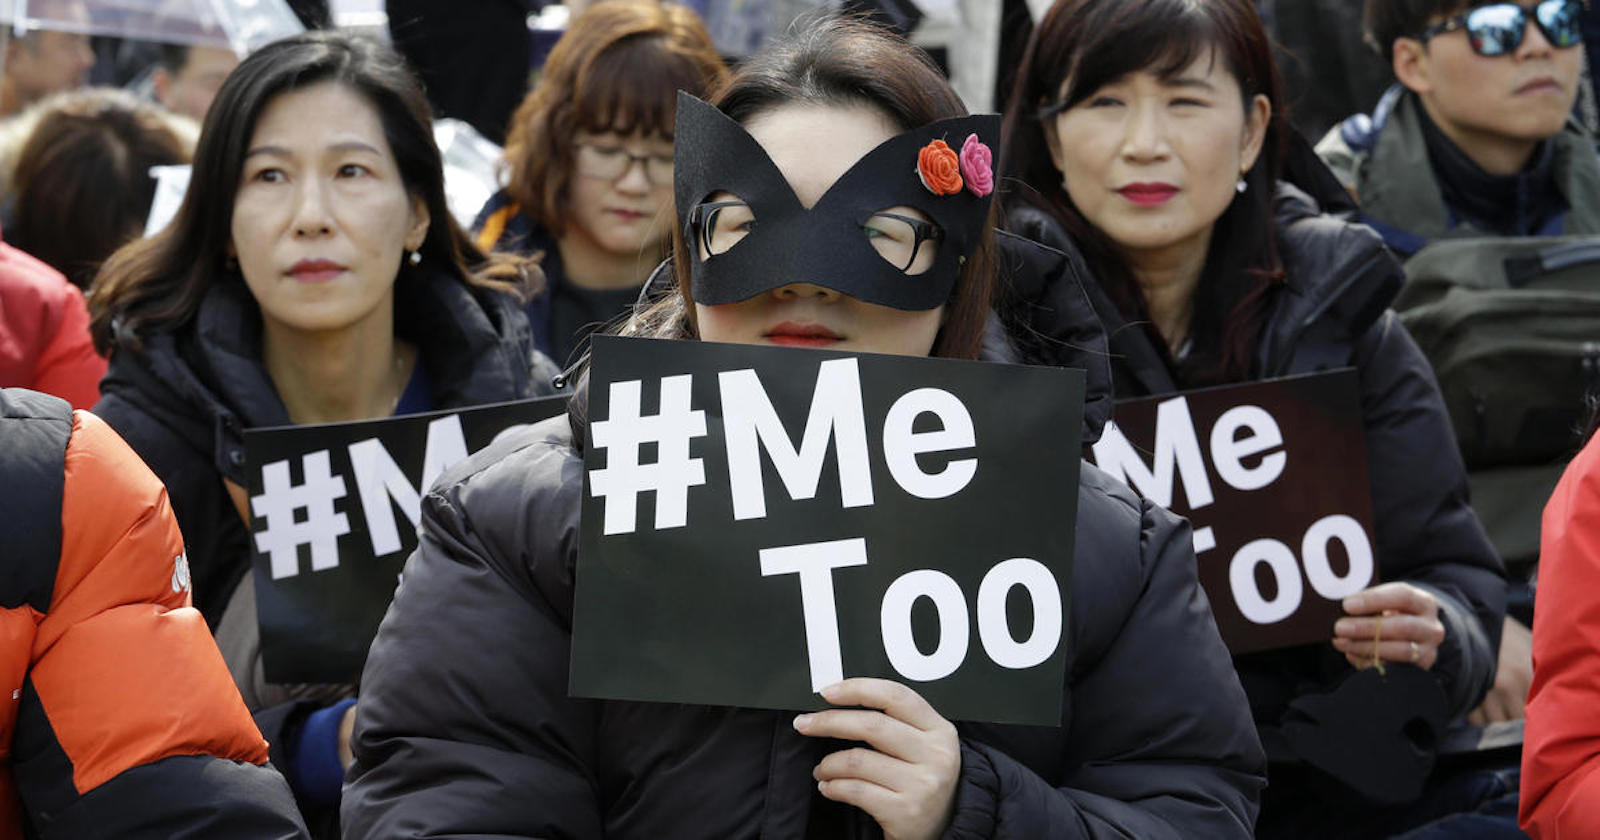 Women in South Korea have regularly united to rally against gendered violence and injustice (Photo: Parsha Sass/ Flickr)